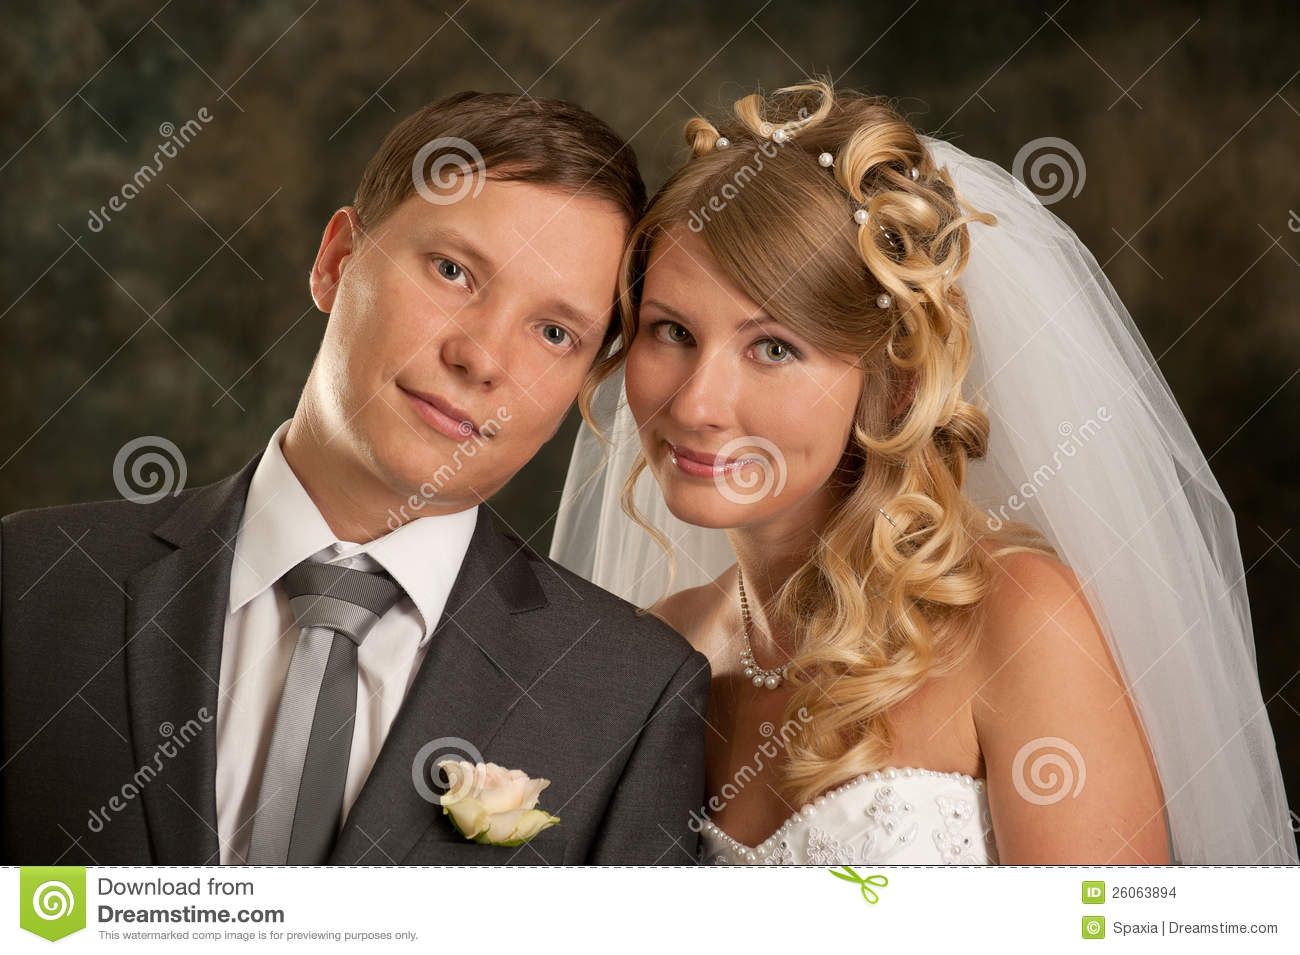 marry young The asterisks and circumflexes indicate varying levels of statistical significance, but generally, the differences are statistically significant for high school graduates, those with some college.